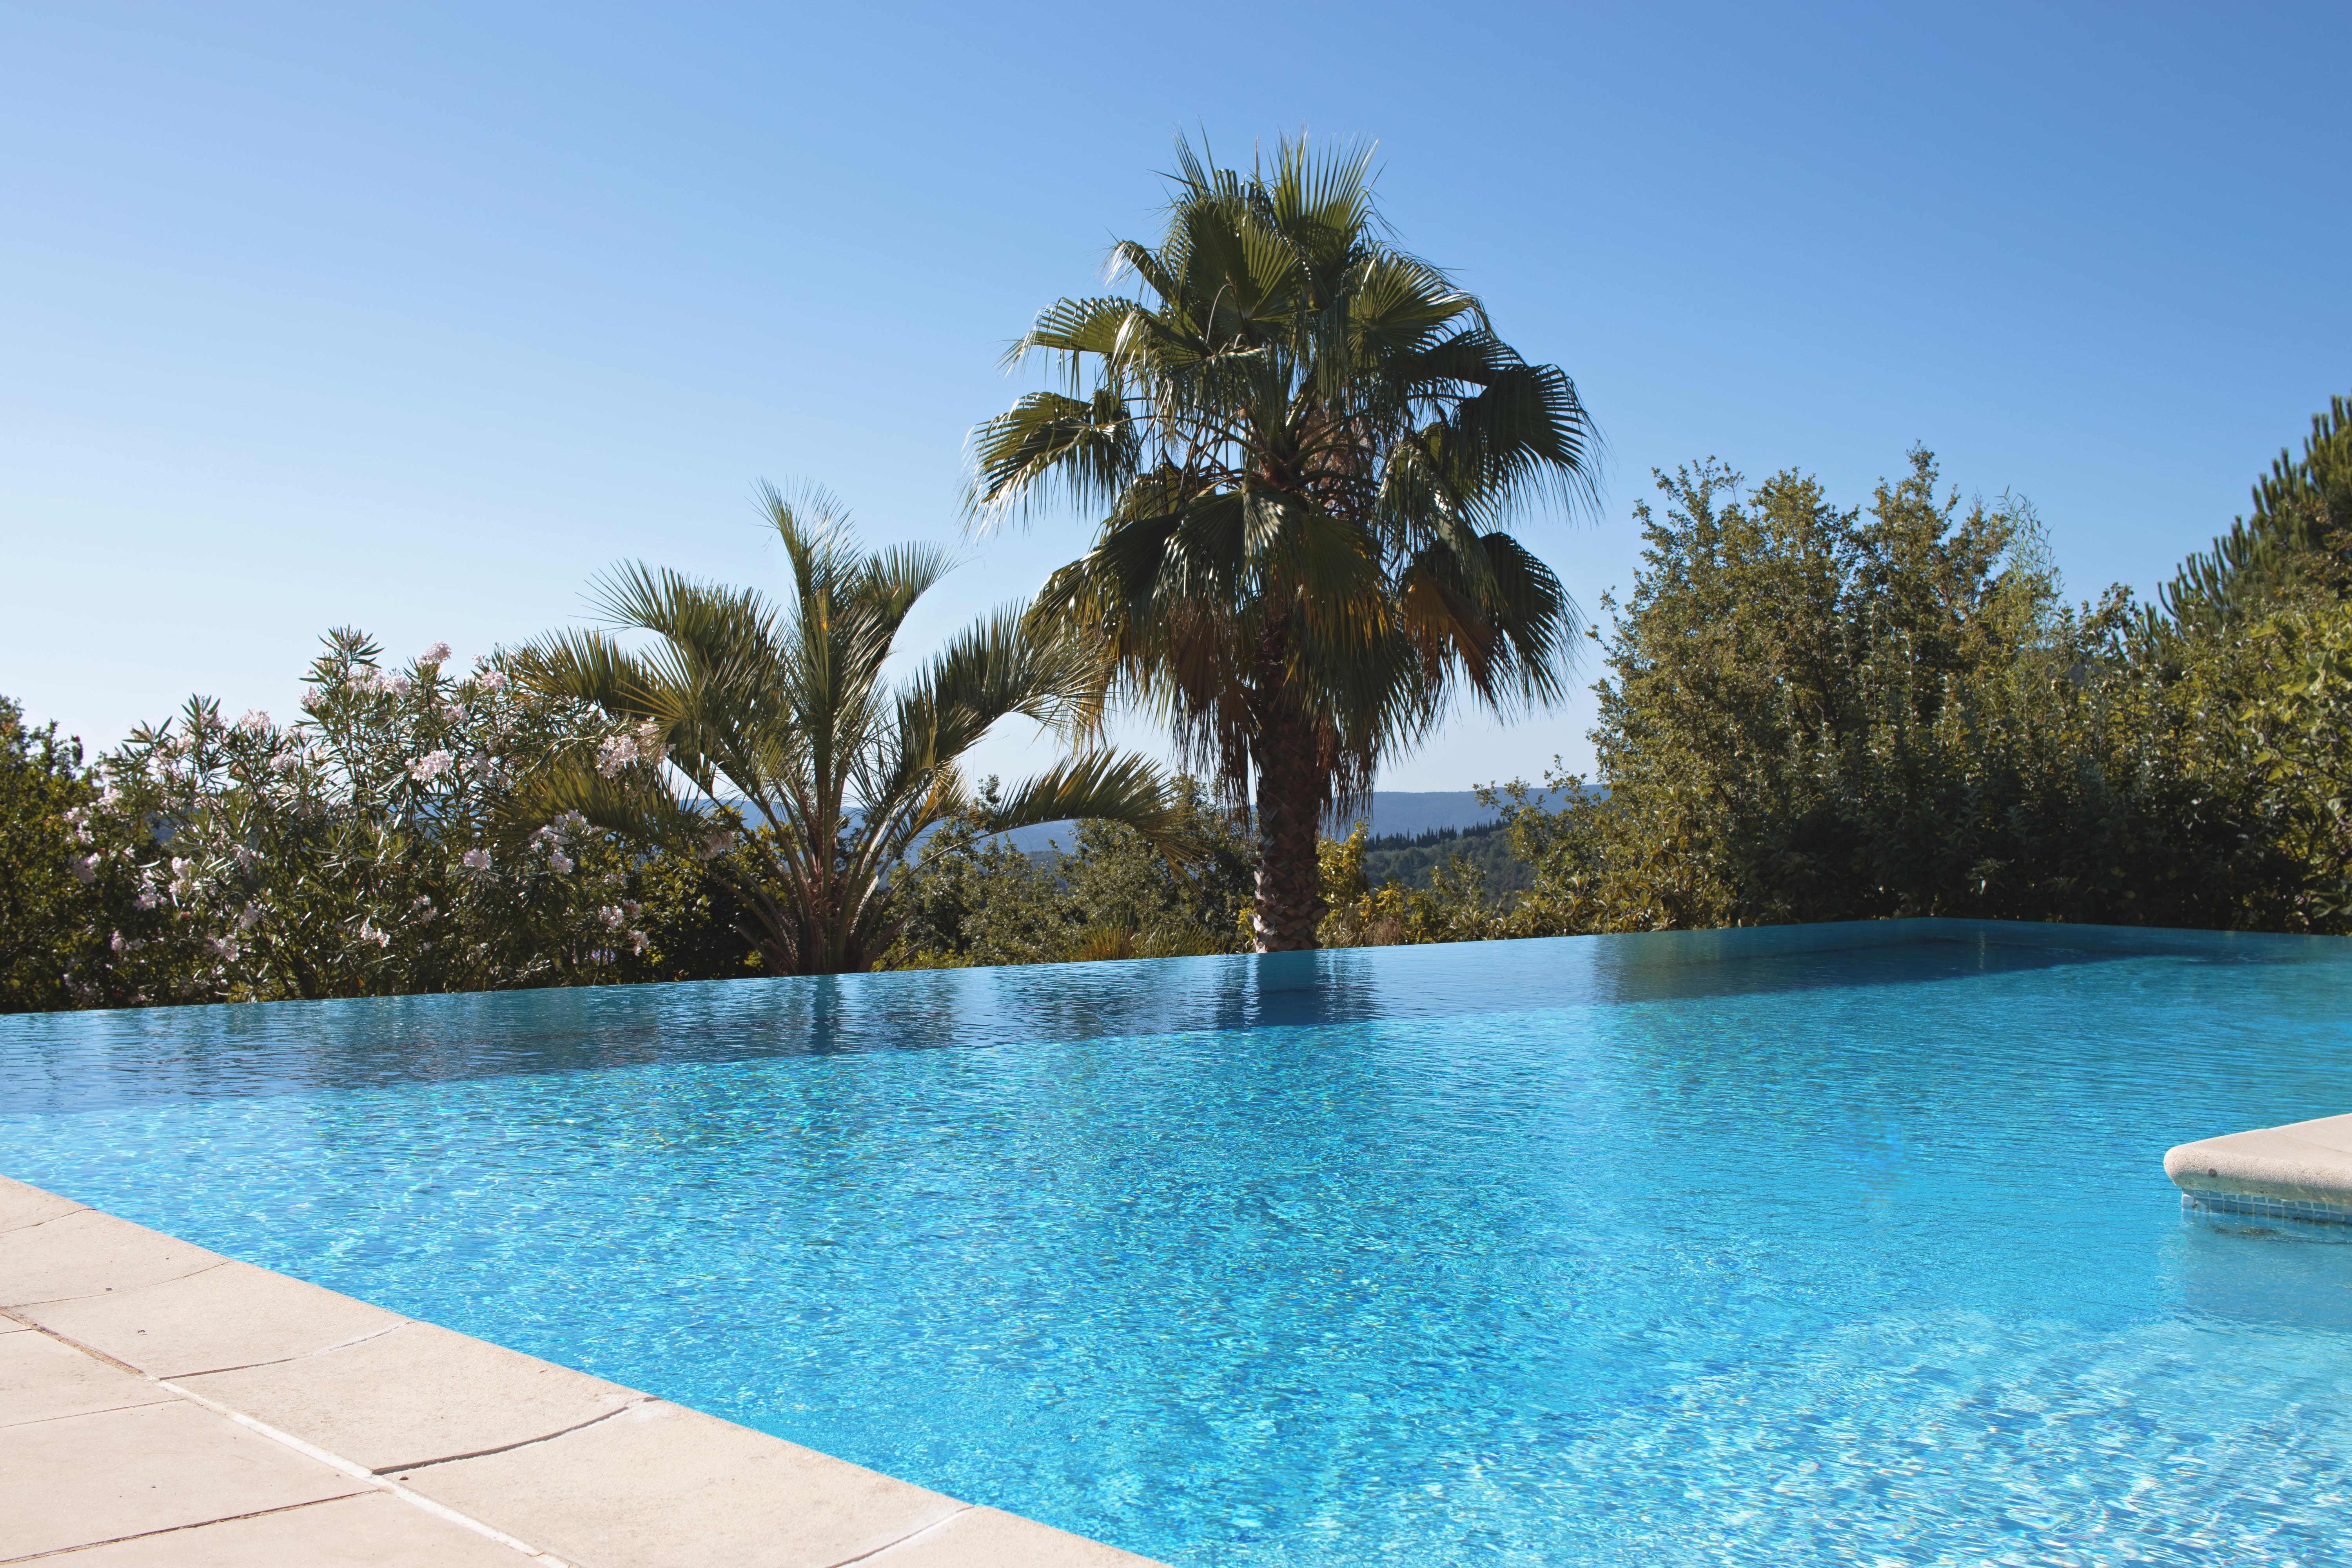 Summer Holiday in Cote d'Azur